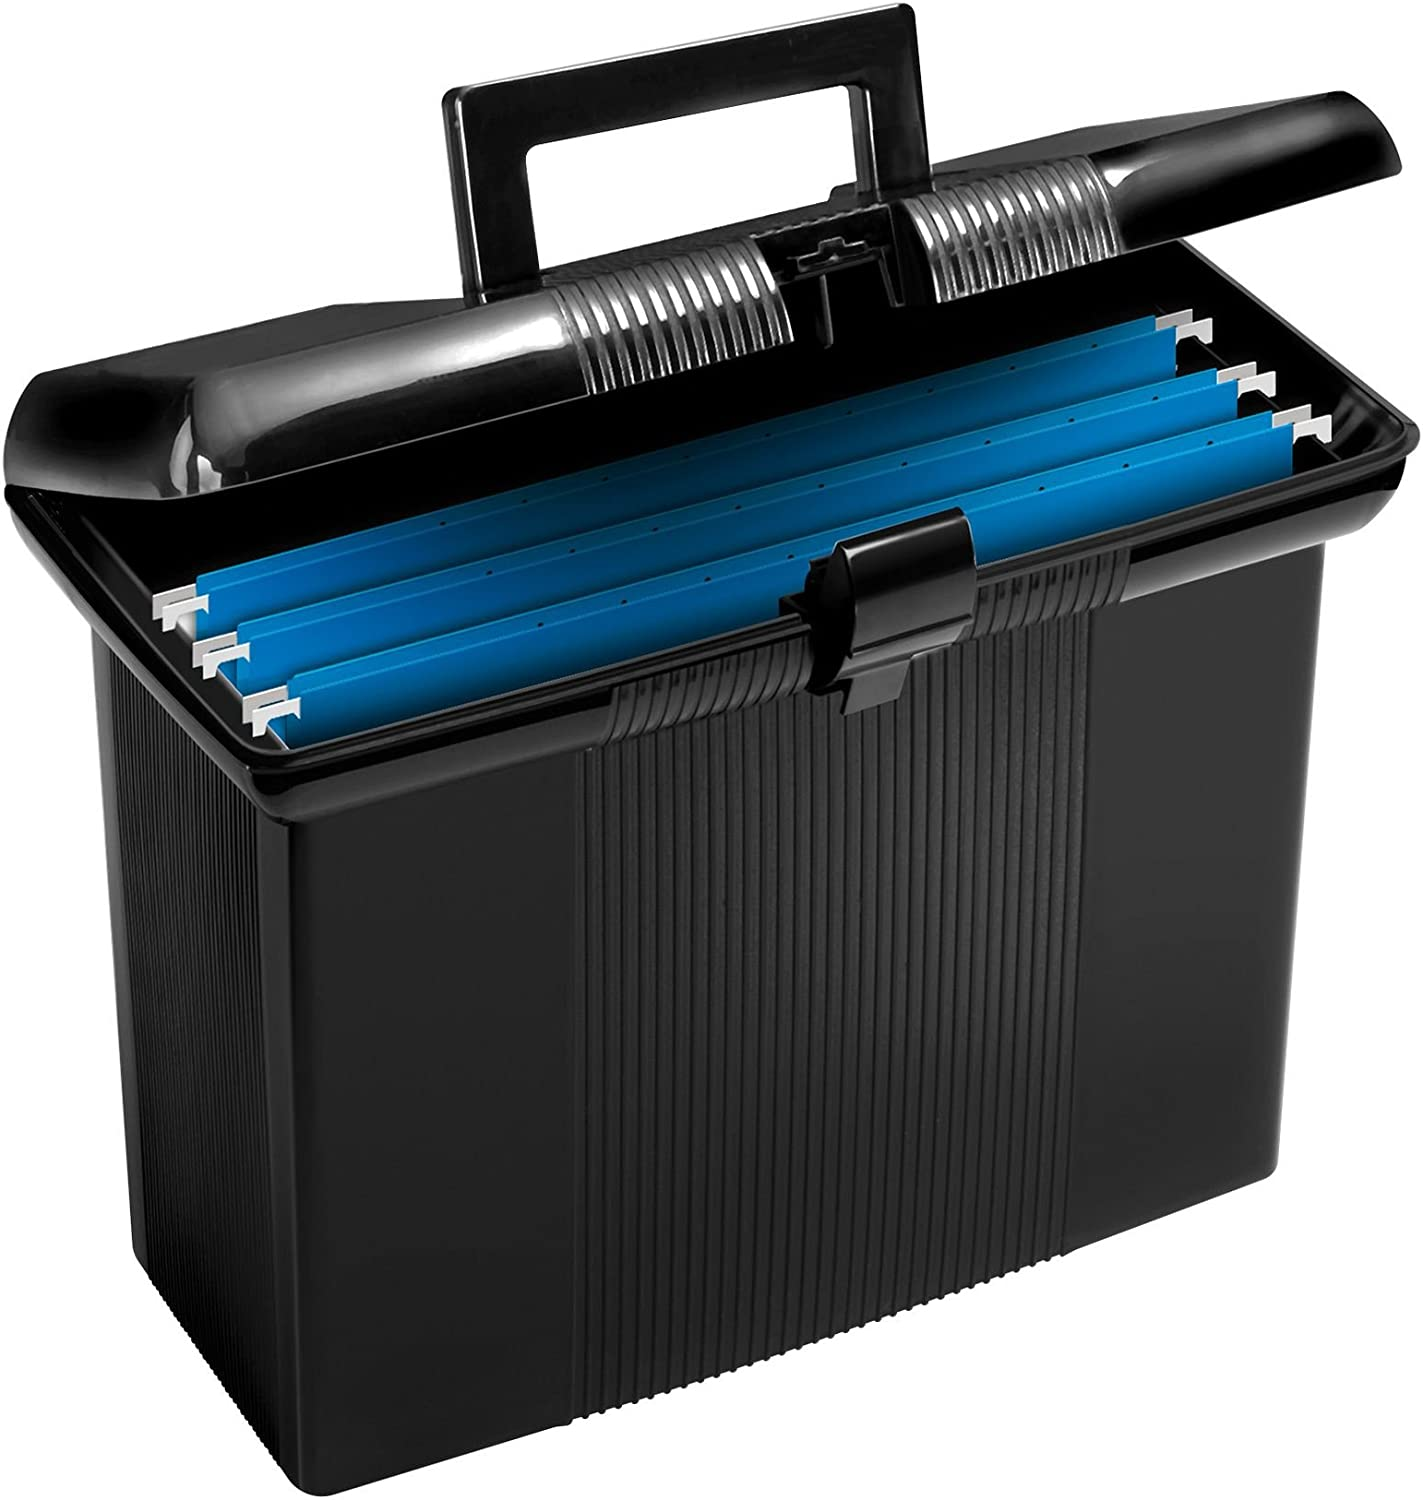 """Pendaflex Portable File Box, Black, 11"""" H x 14"""" W x 6-1/2"""" D (41732) : Office Waste Bins : Office Products"""